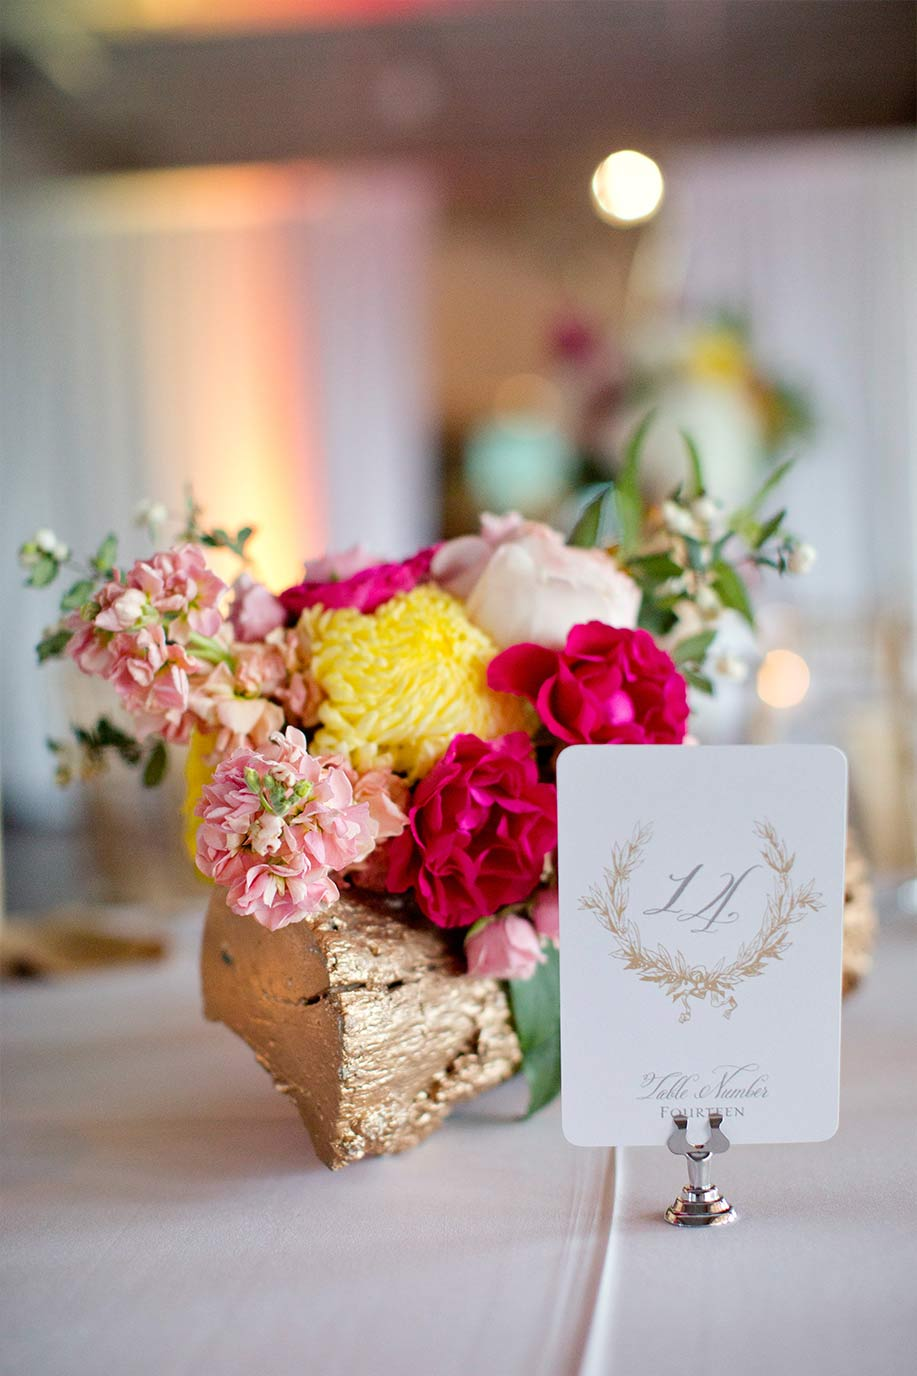 Gold log wedding centerpiece and laurel wreath table number